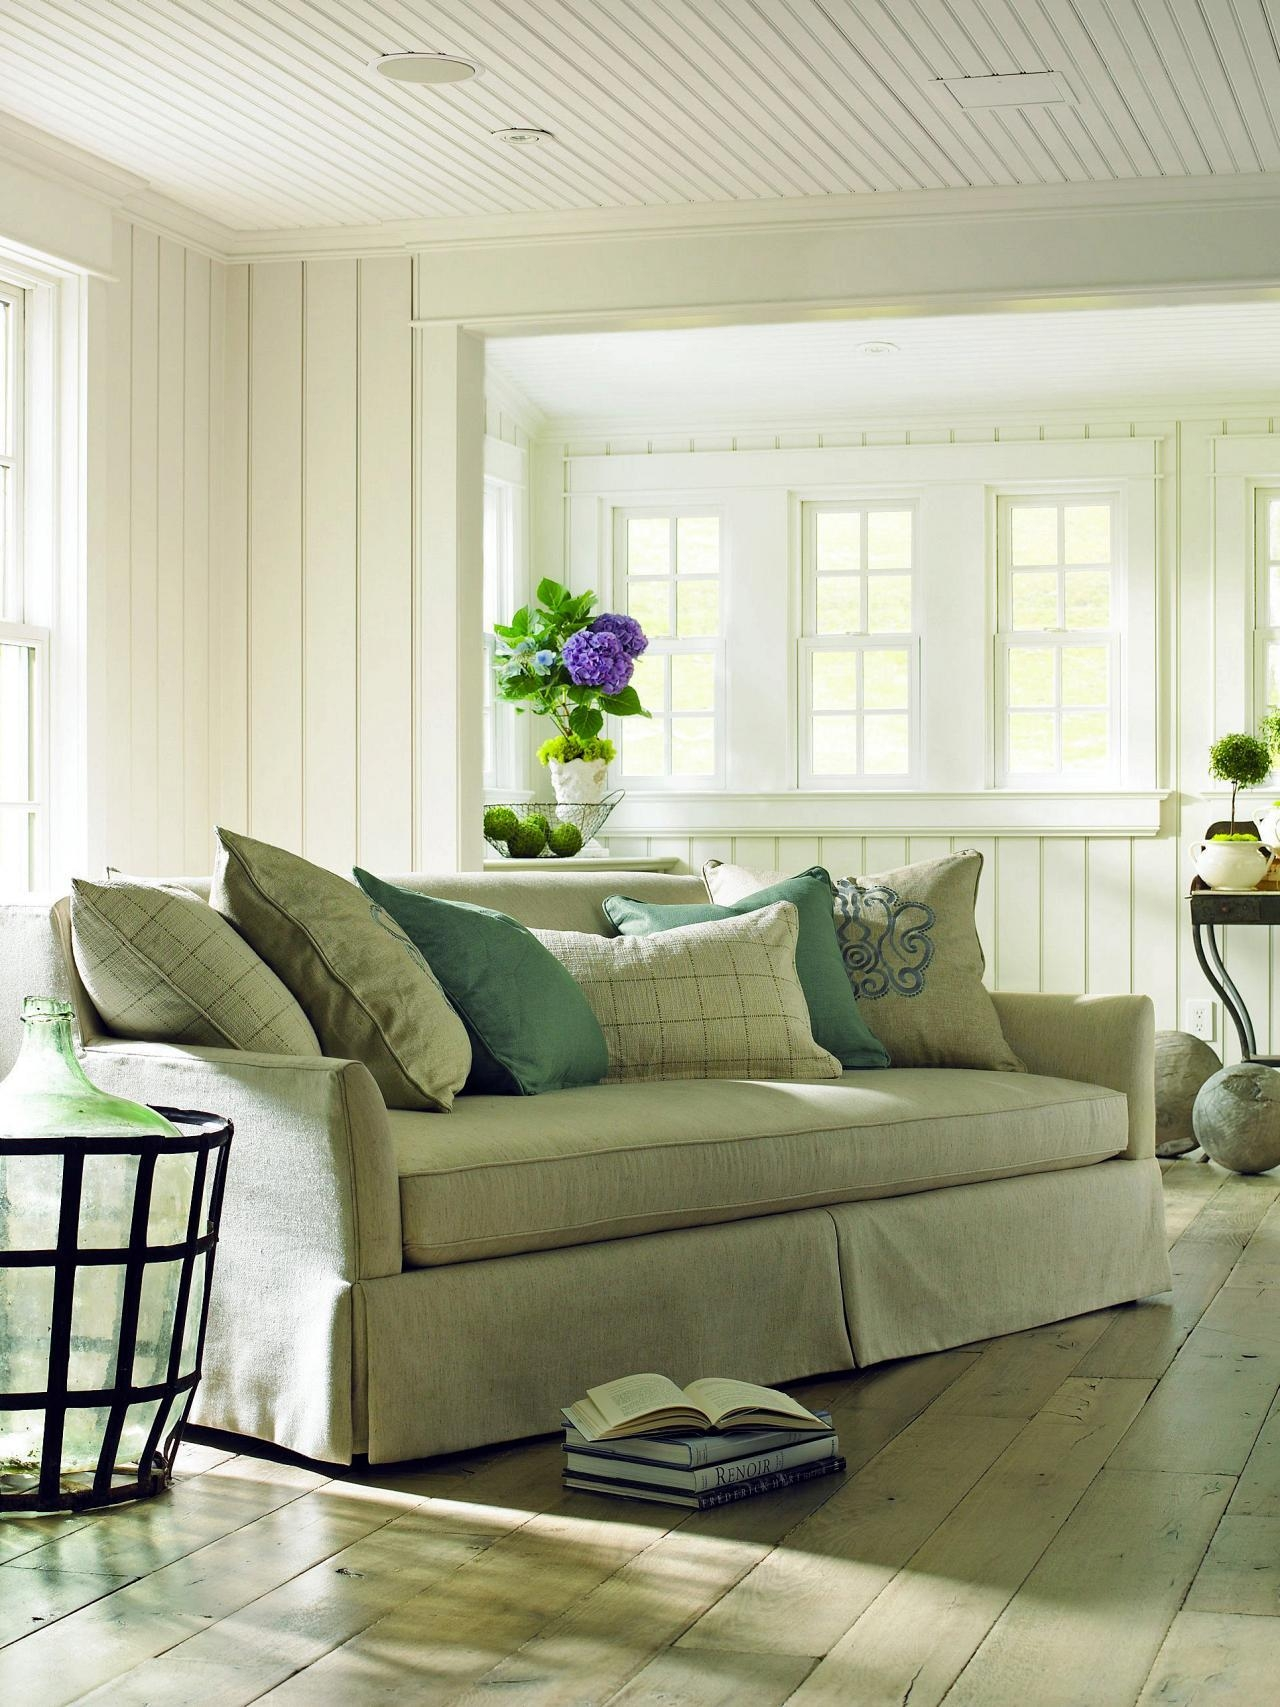 Mint Green Sofa With Ideas Image 20172 | Kengire Throughout Mint Green Sofas (Image 15 of 20)